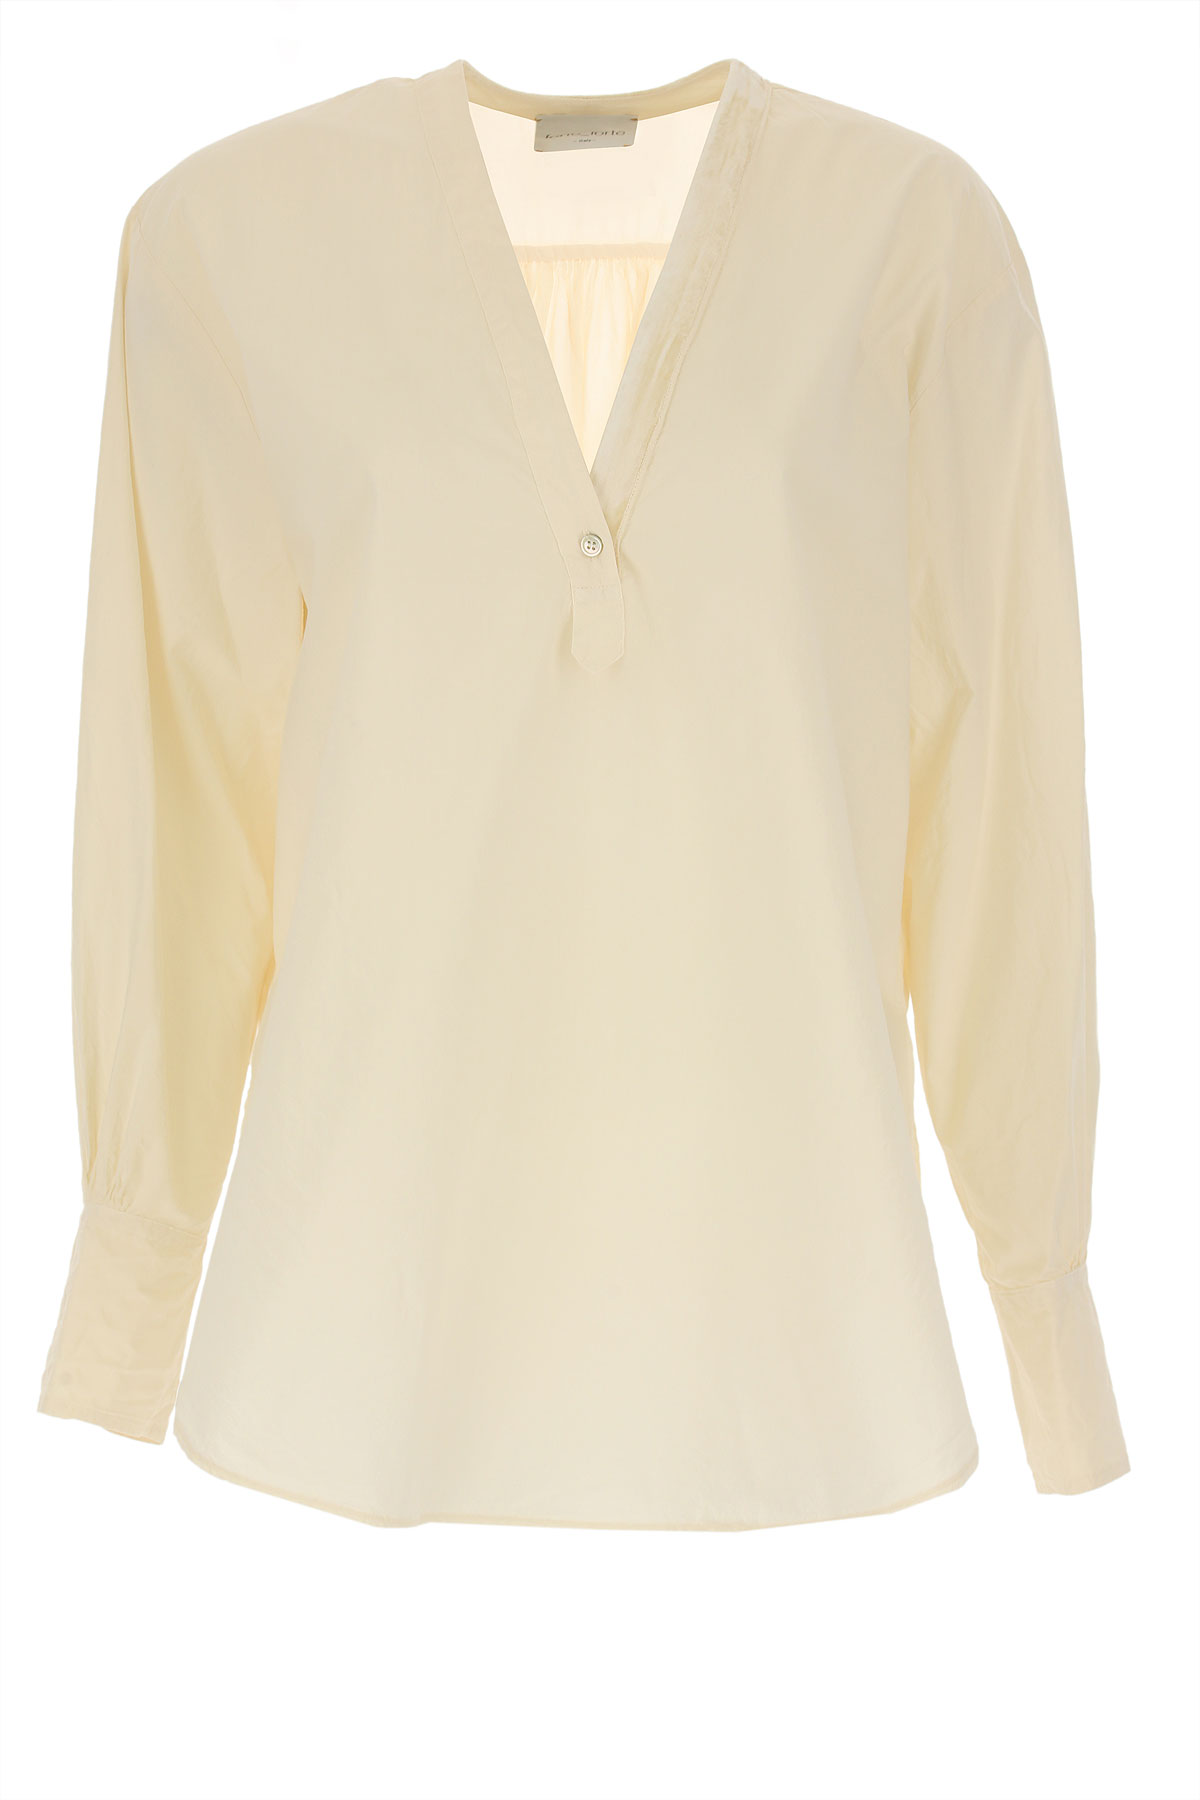 Forte Forte Shirt for Women, Ivory, Cotton, 2019, 1 - S - IT 40 2 - M - IT 42